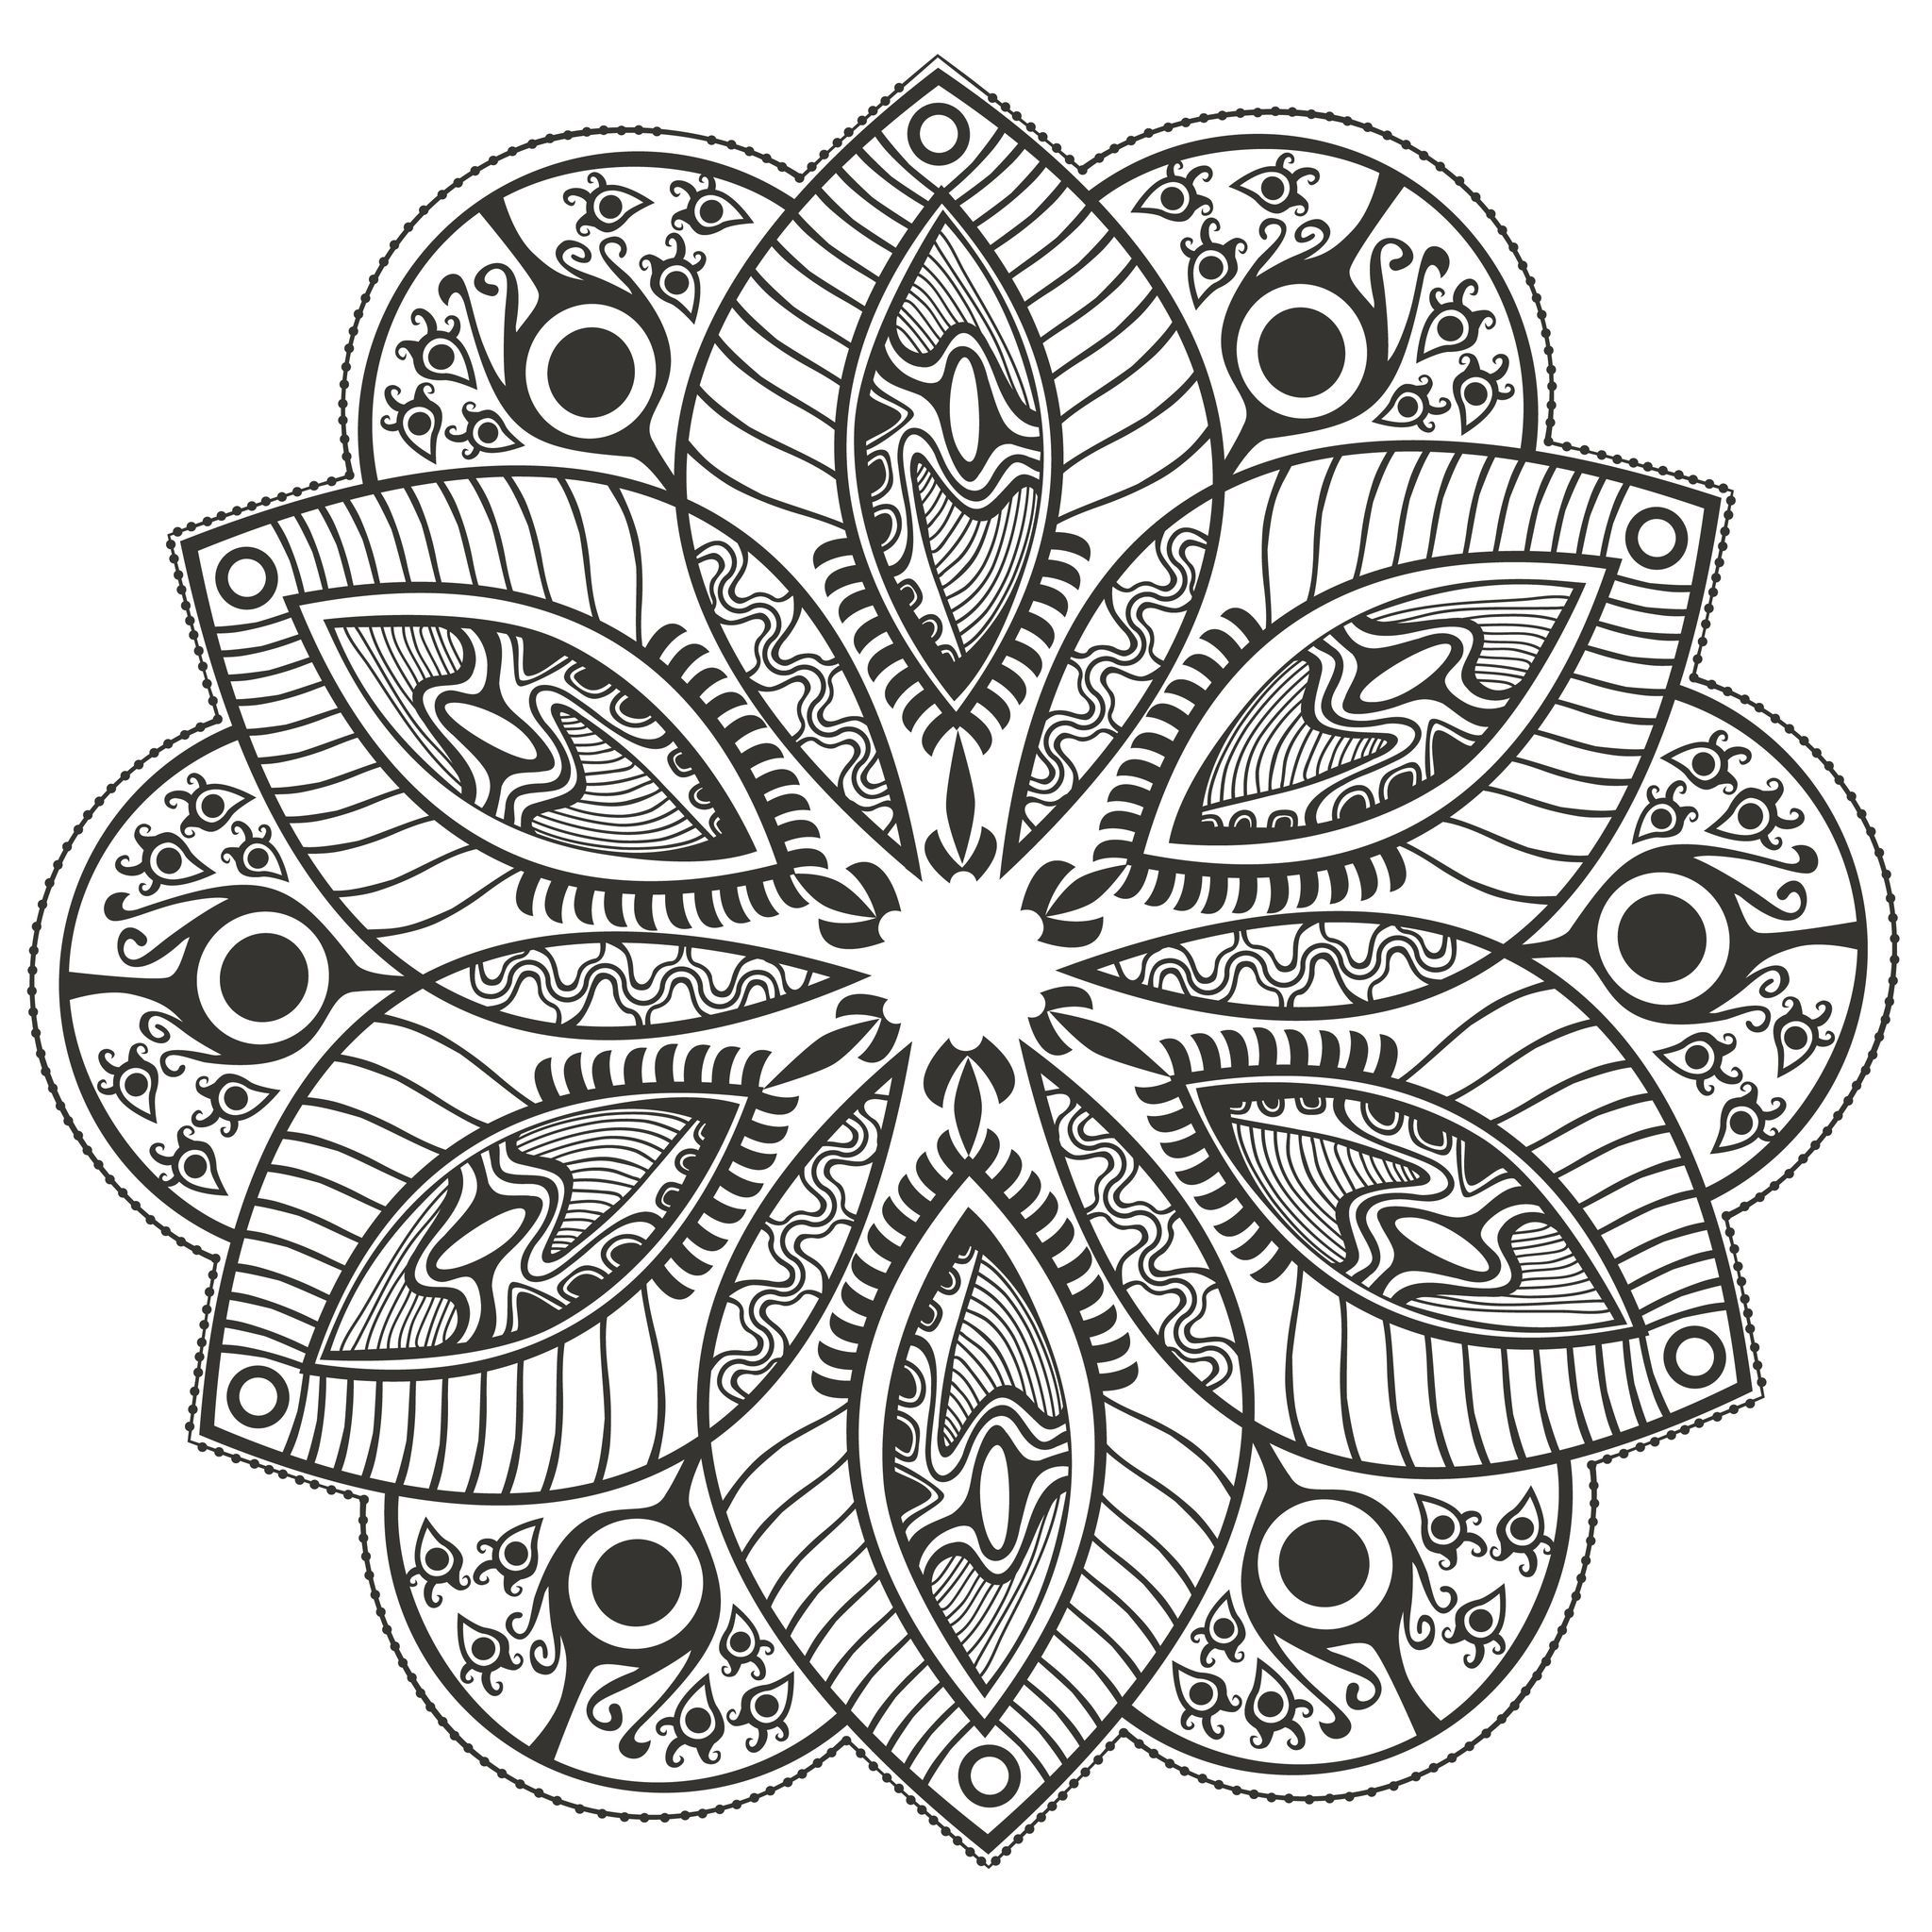 coloring-page-mandala-Original-Flower-by-markovka, From the gallery ...